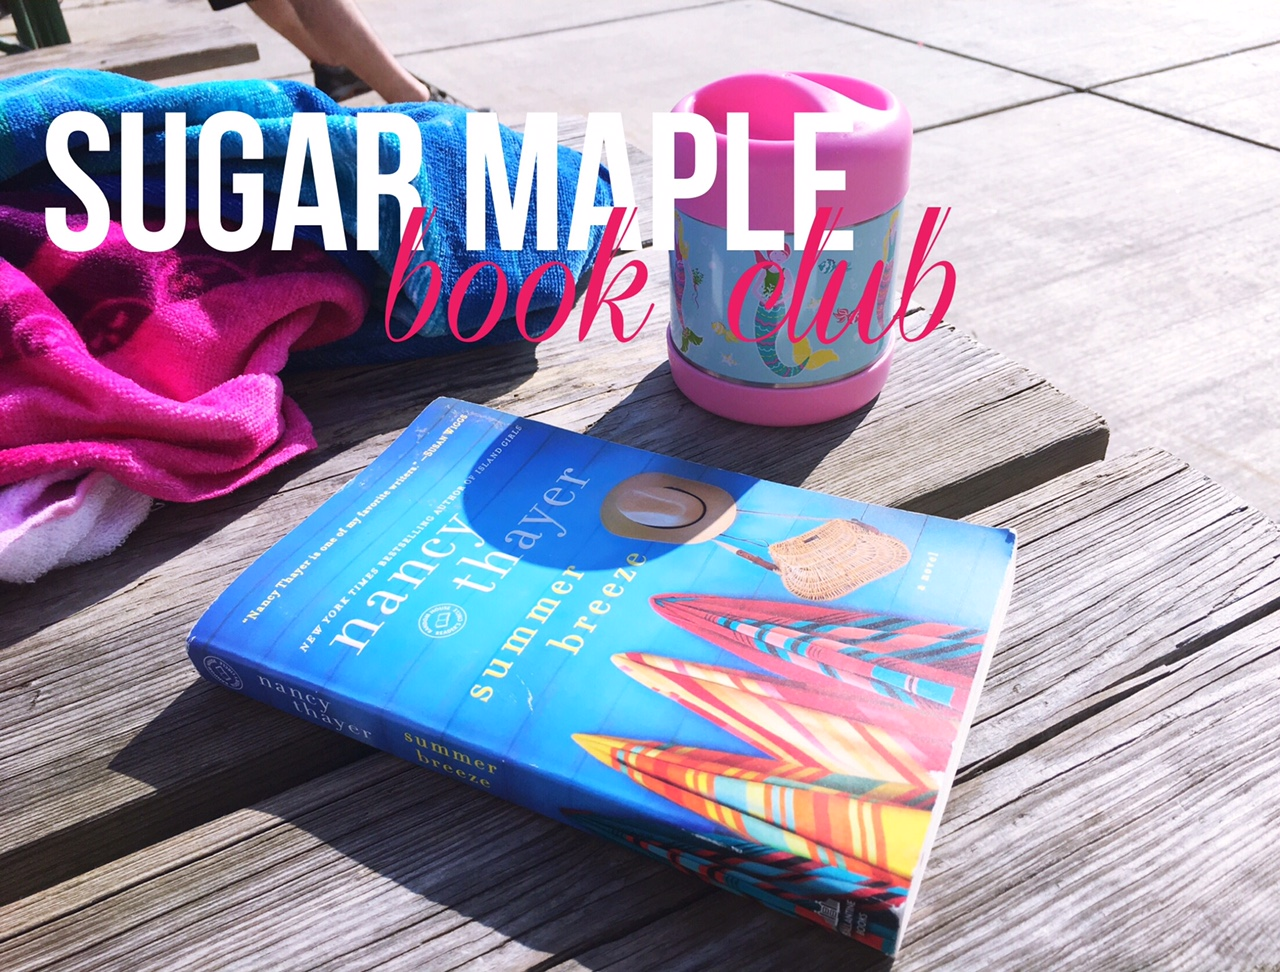 SUGAR MAPLE book club -Summer Breeze by Nancy Thayer - A book club for busy moms (2)